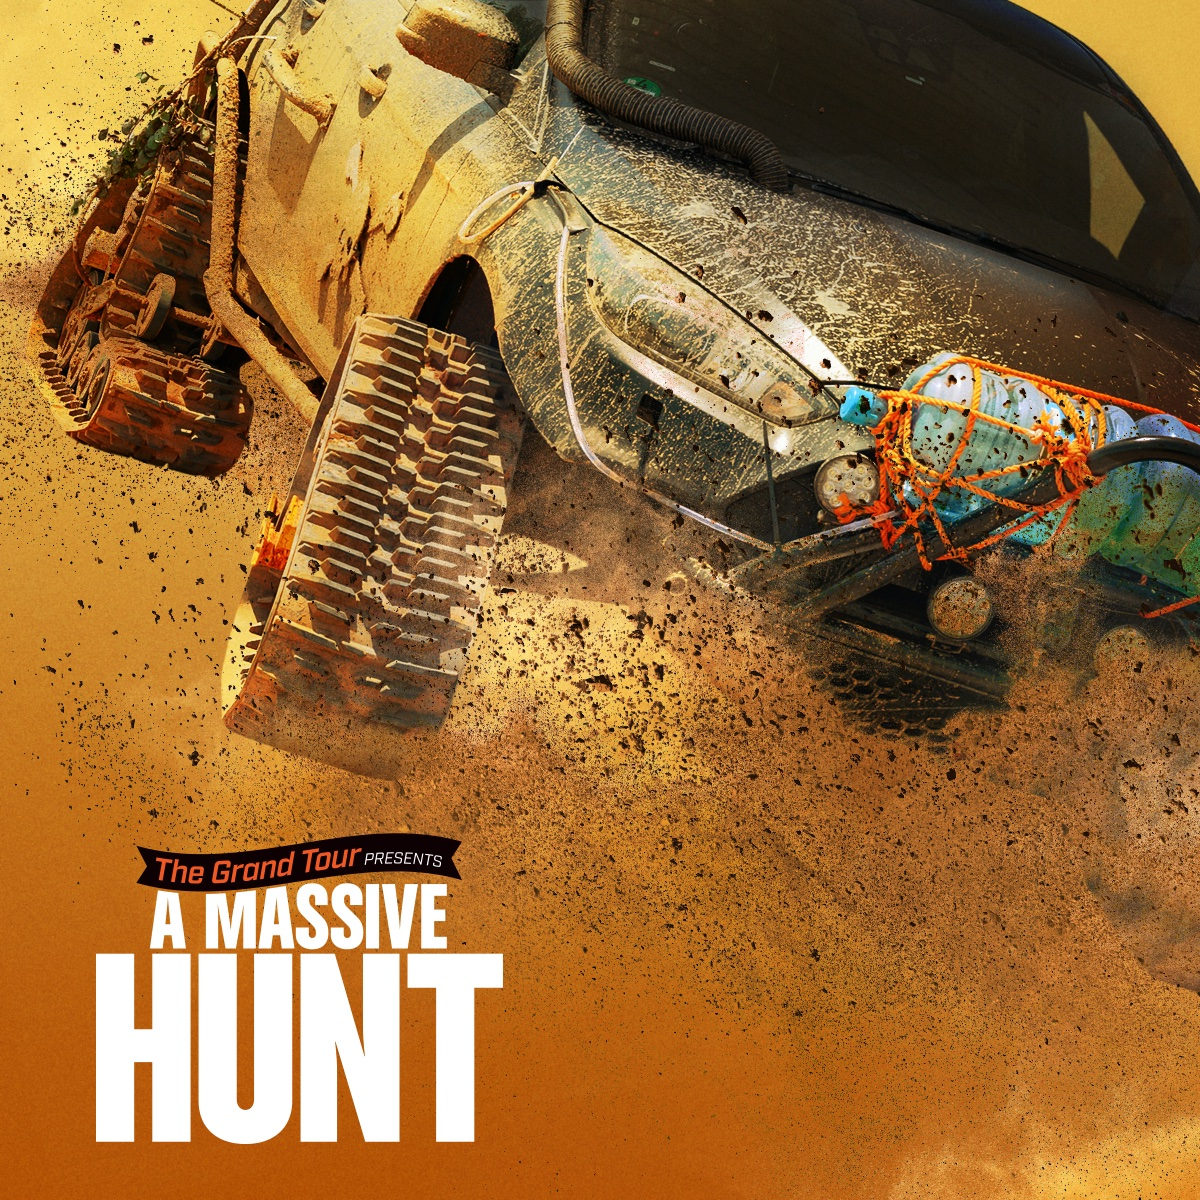 Spoiler: Gets a bit muddy.  The Grand Tour Presents: #AMassiveHunt. Coming to Prime Video 18 December. https://t.co/smhMQPYB9X